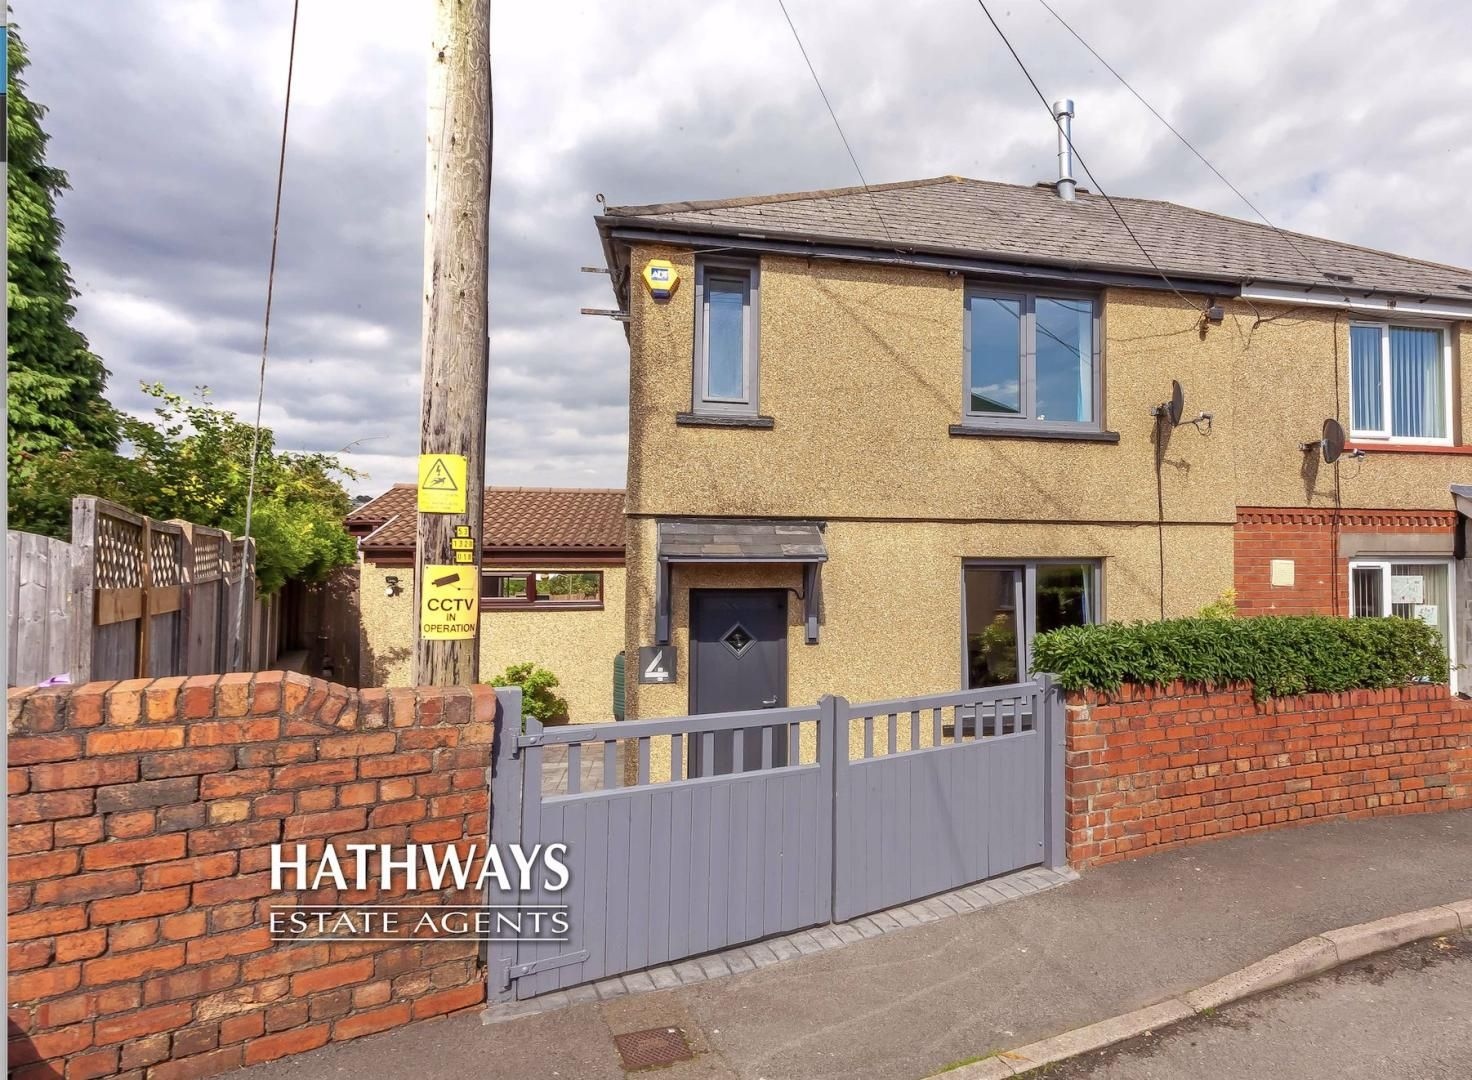 3 bed house for sale in East View, NP4